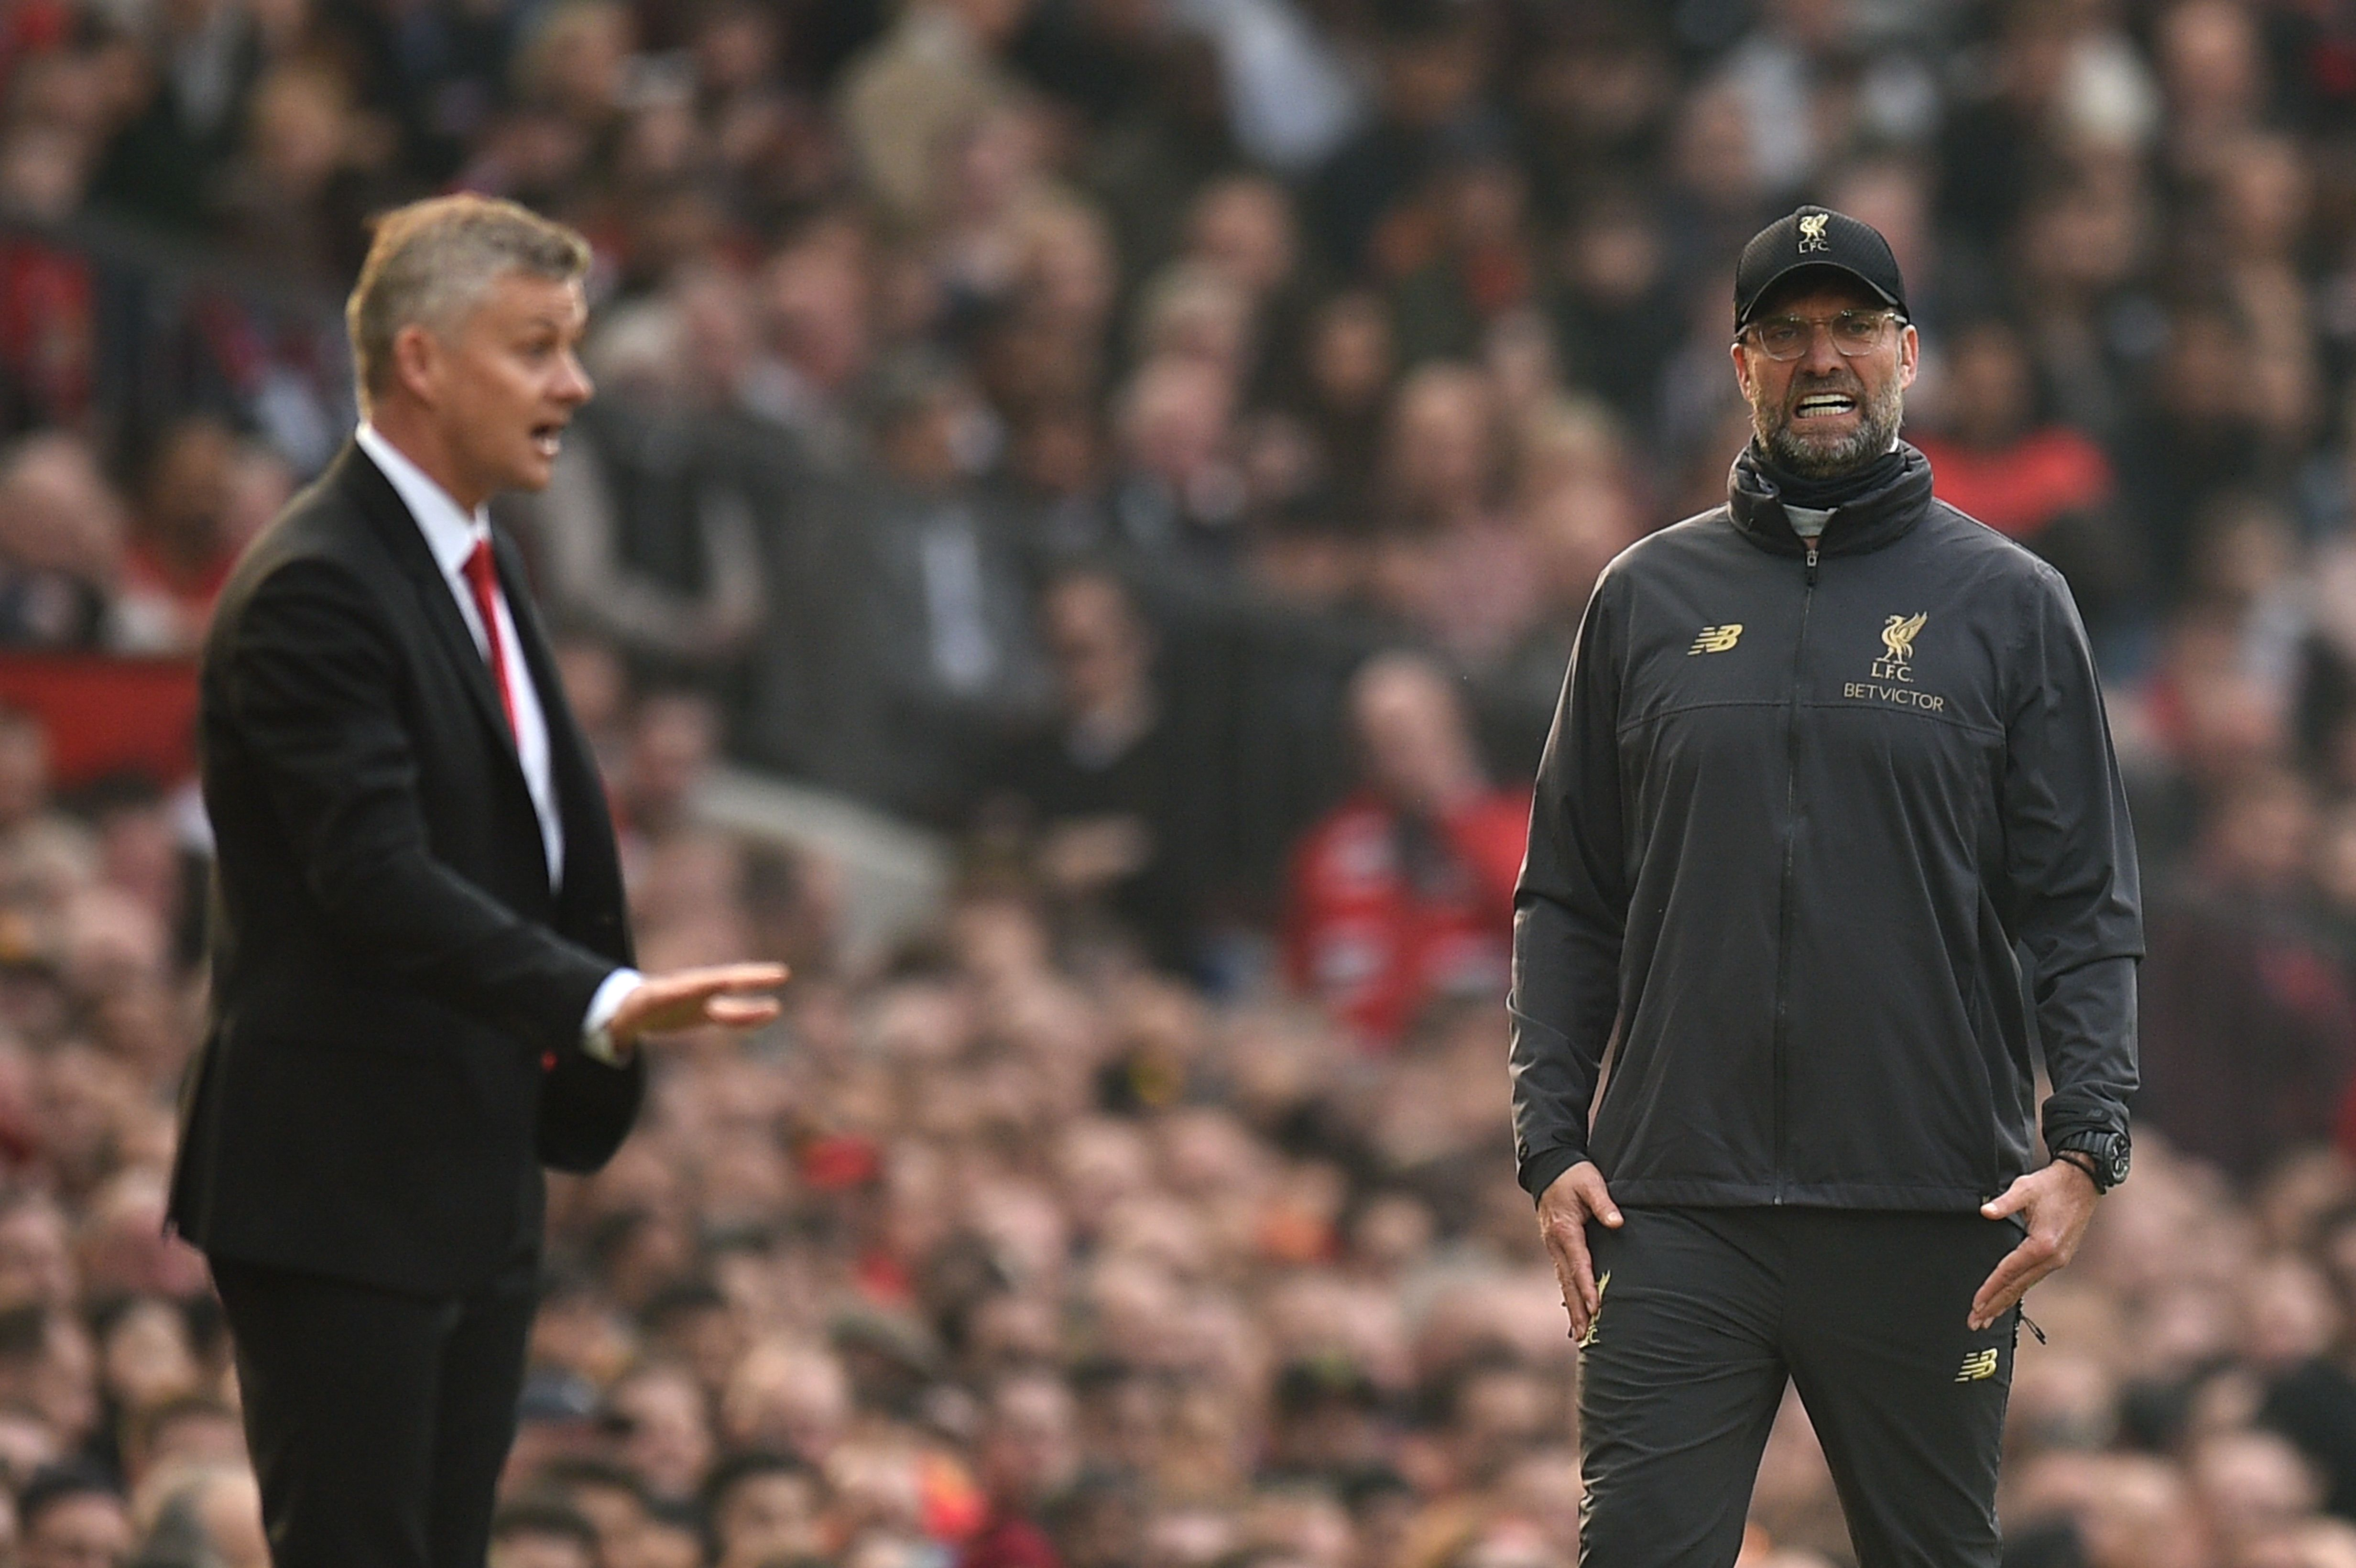 Solskjaer and Klopp will be aiming for the league title (Photo by OLI SCARFF/AFP/Getty Images)